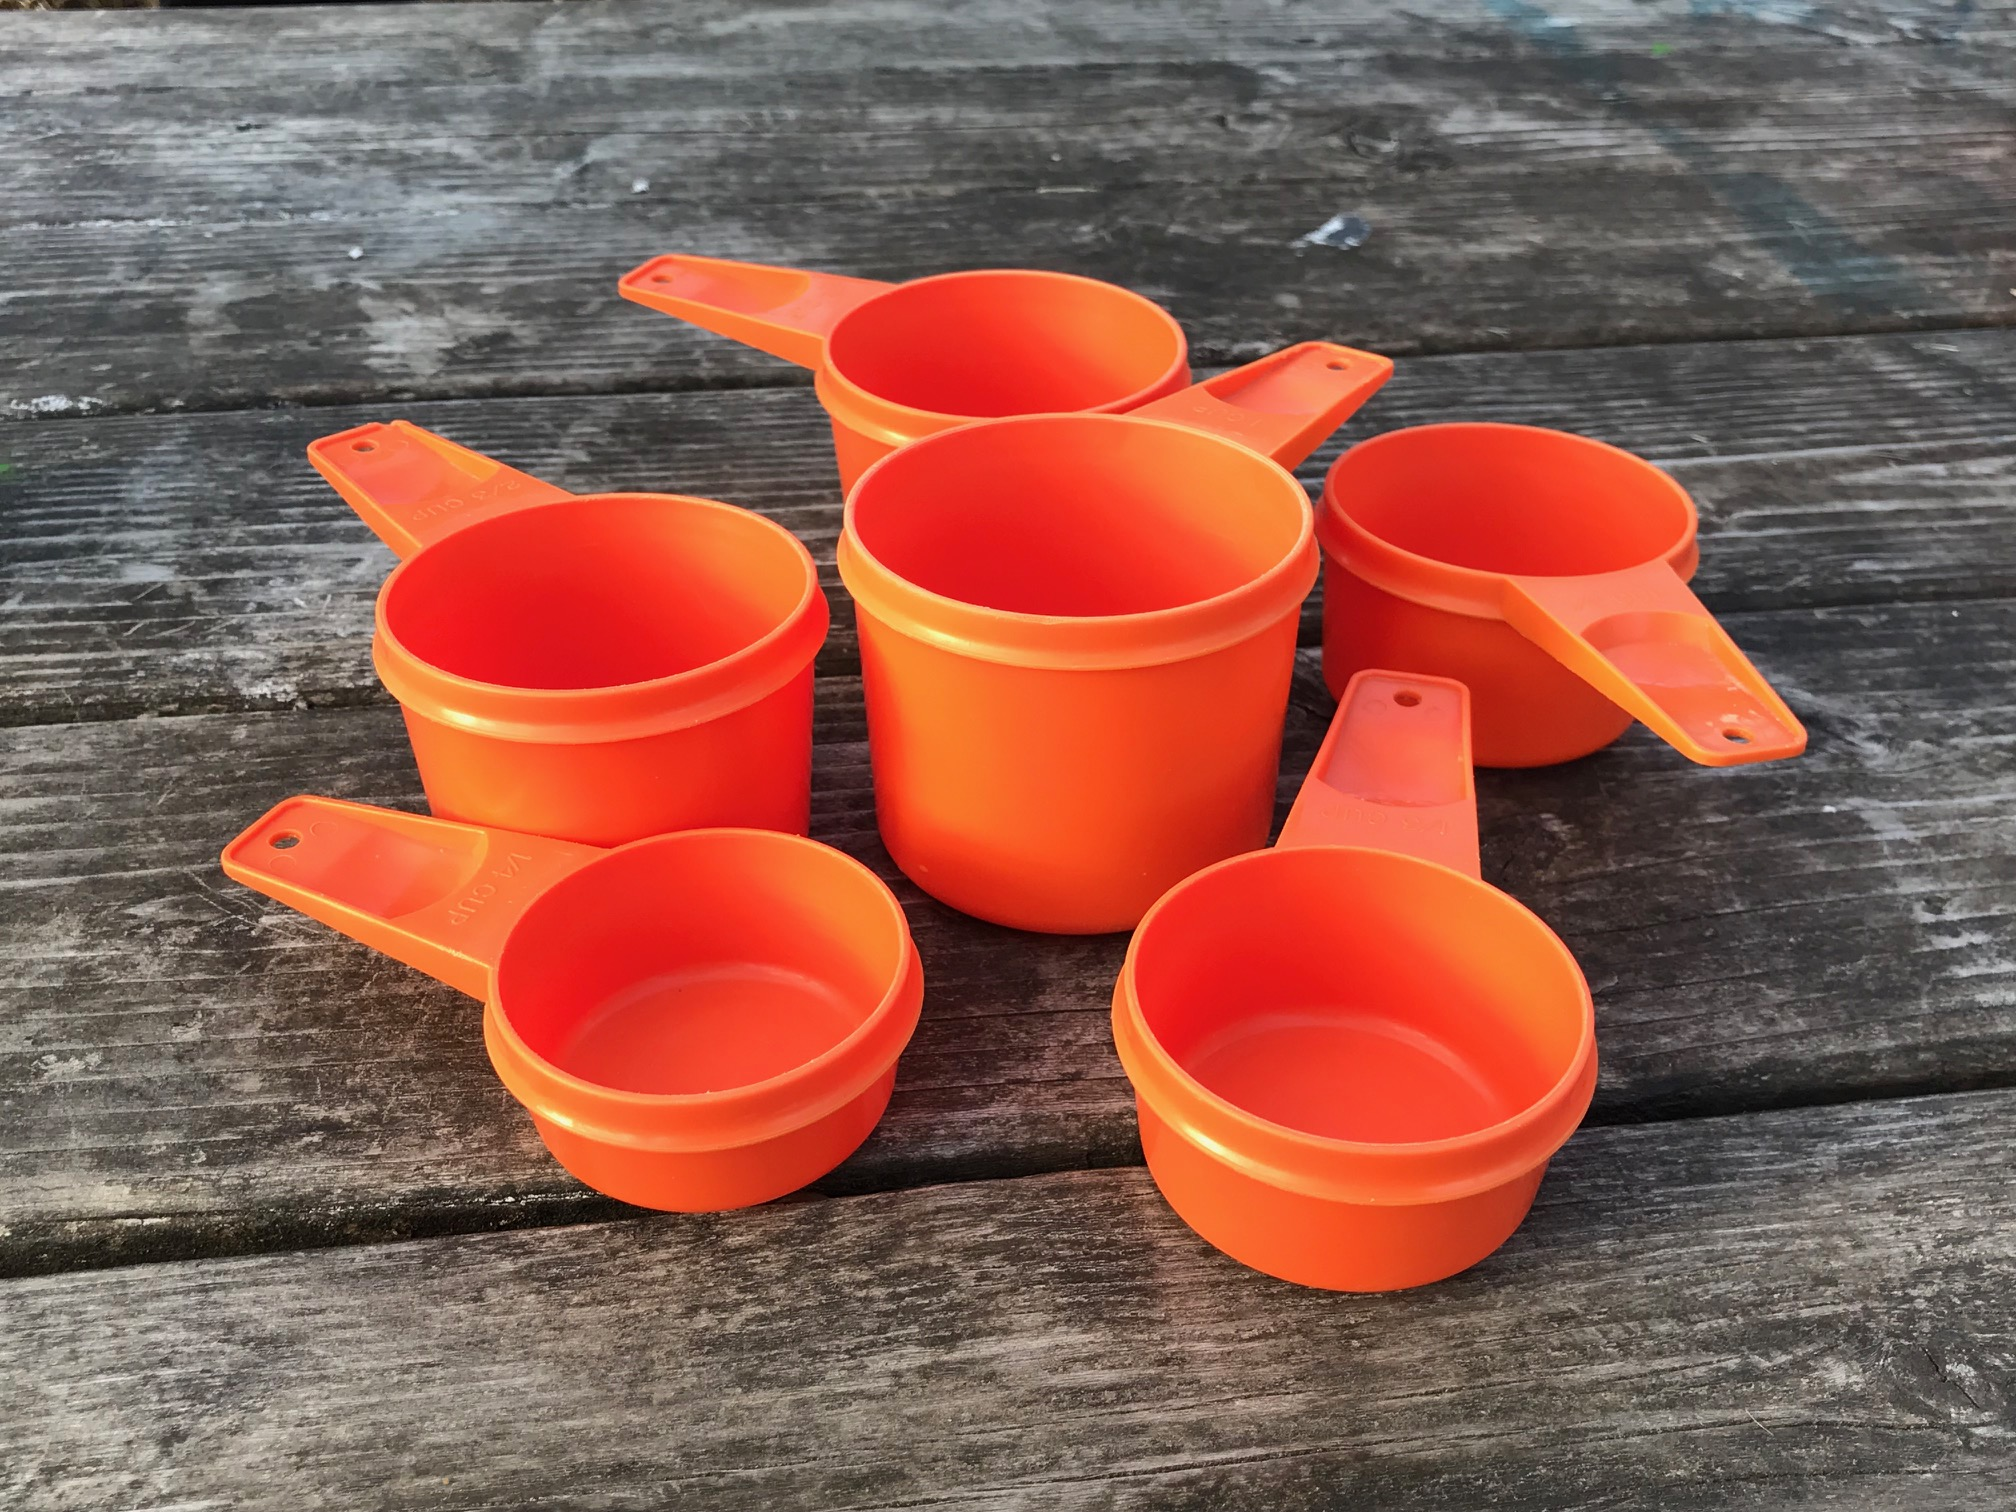 Orange Tupperware Vintage Measuring Cups: 61 ppm Cadmium. Cadmium is a known carcinogen for humans.